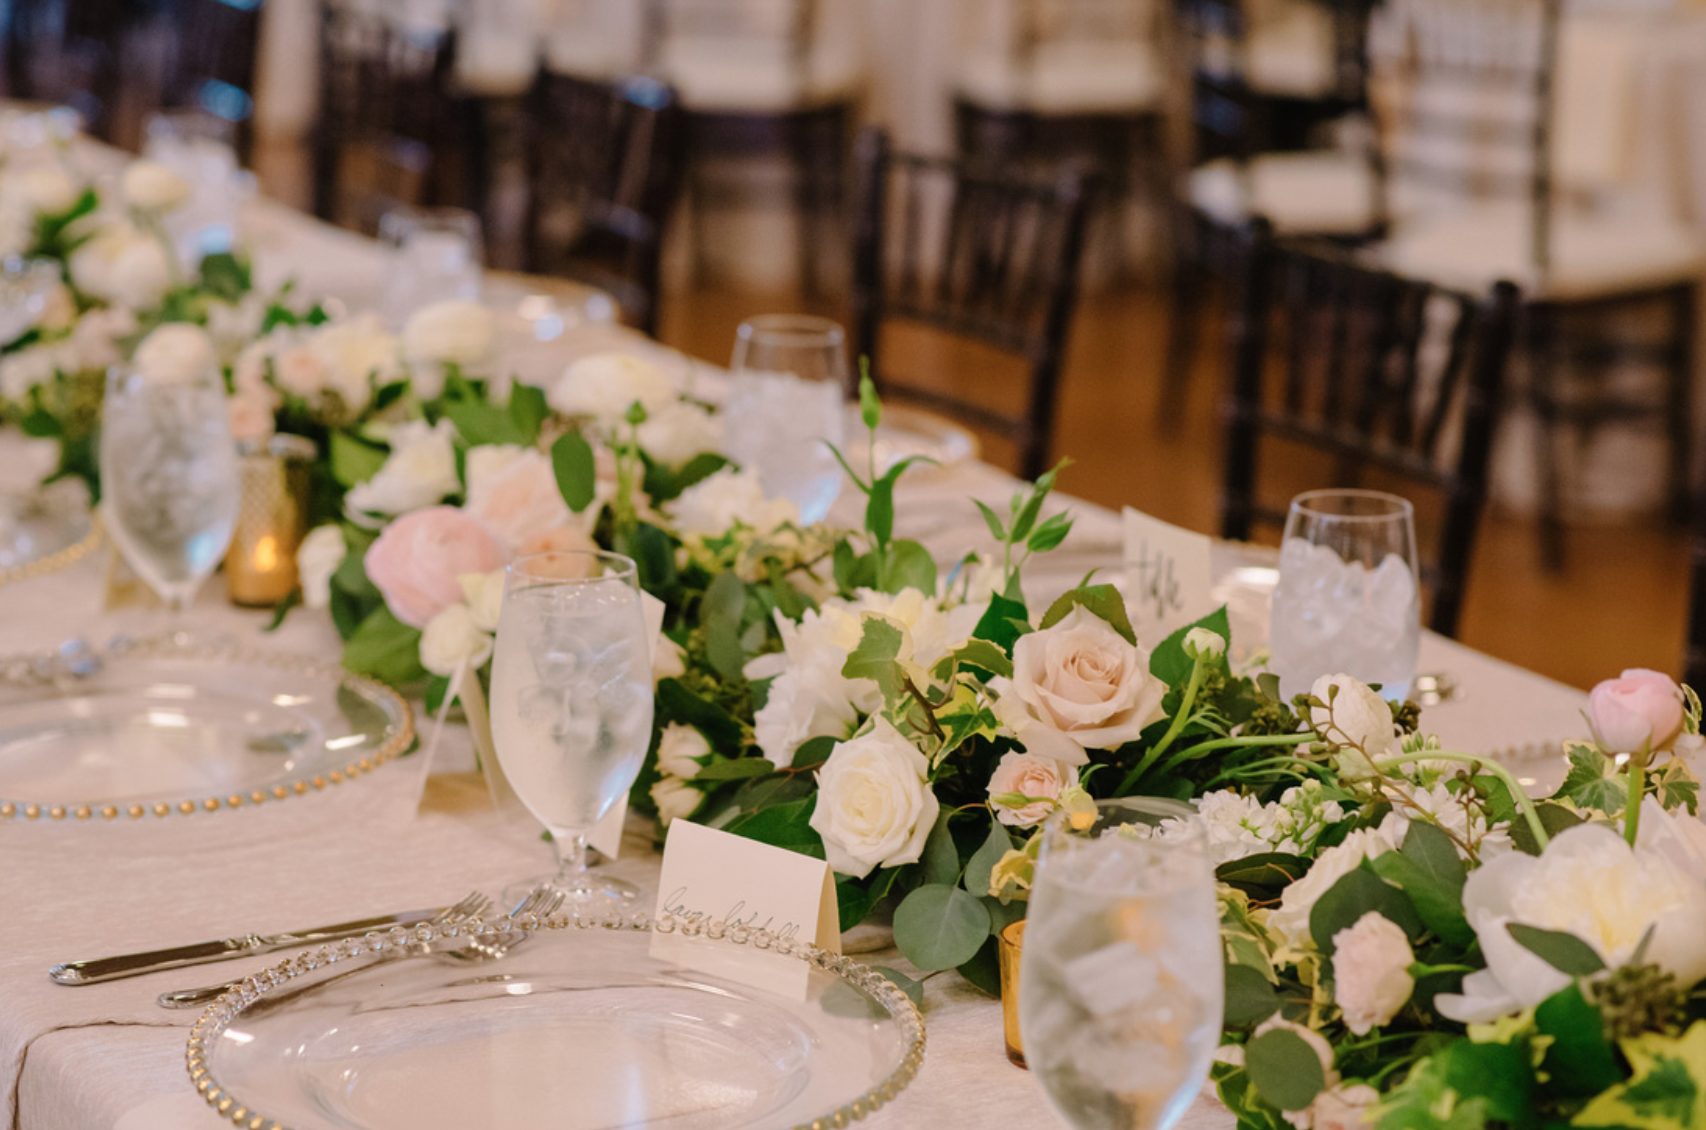 Lucious floral garland on the rectangular tables.